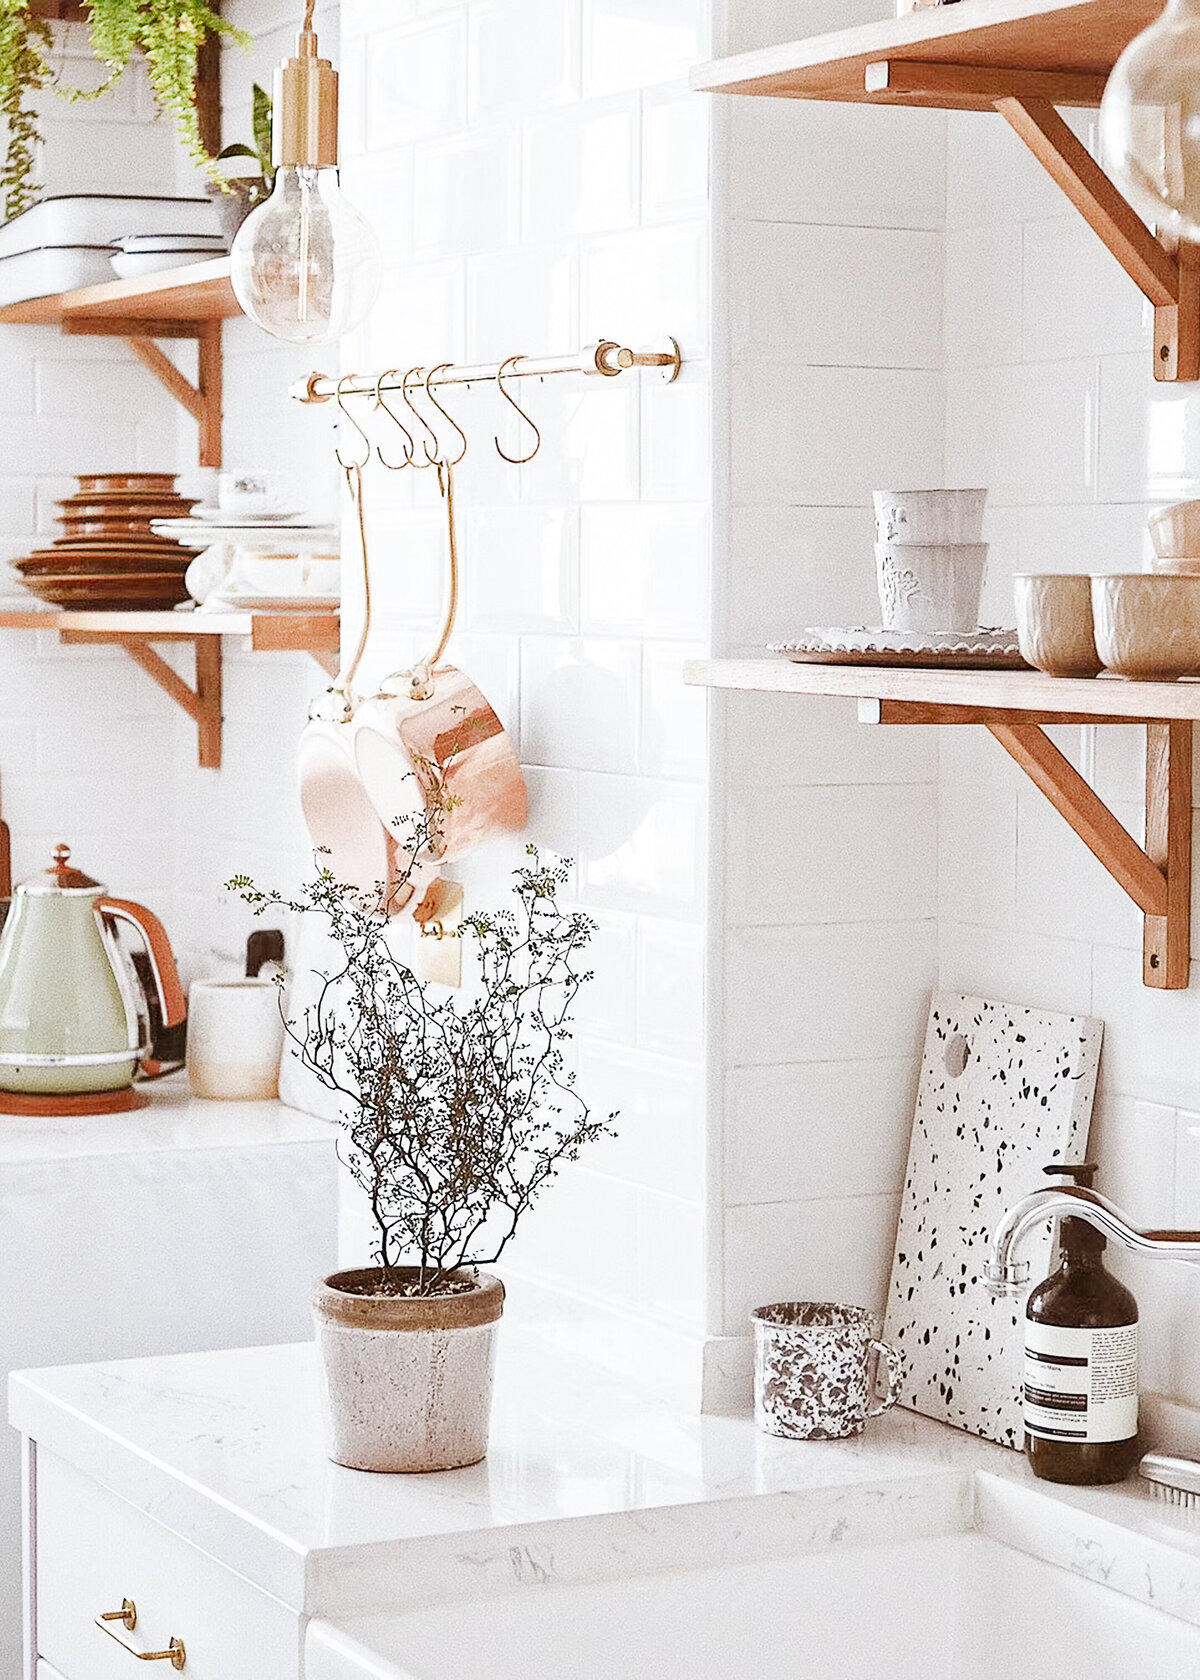 A white kitchen is styled with copper pans and a terrazzo chopping board. Kitchen interior decor inspiration.